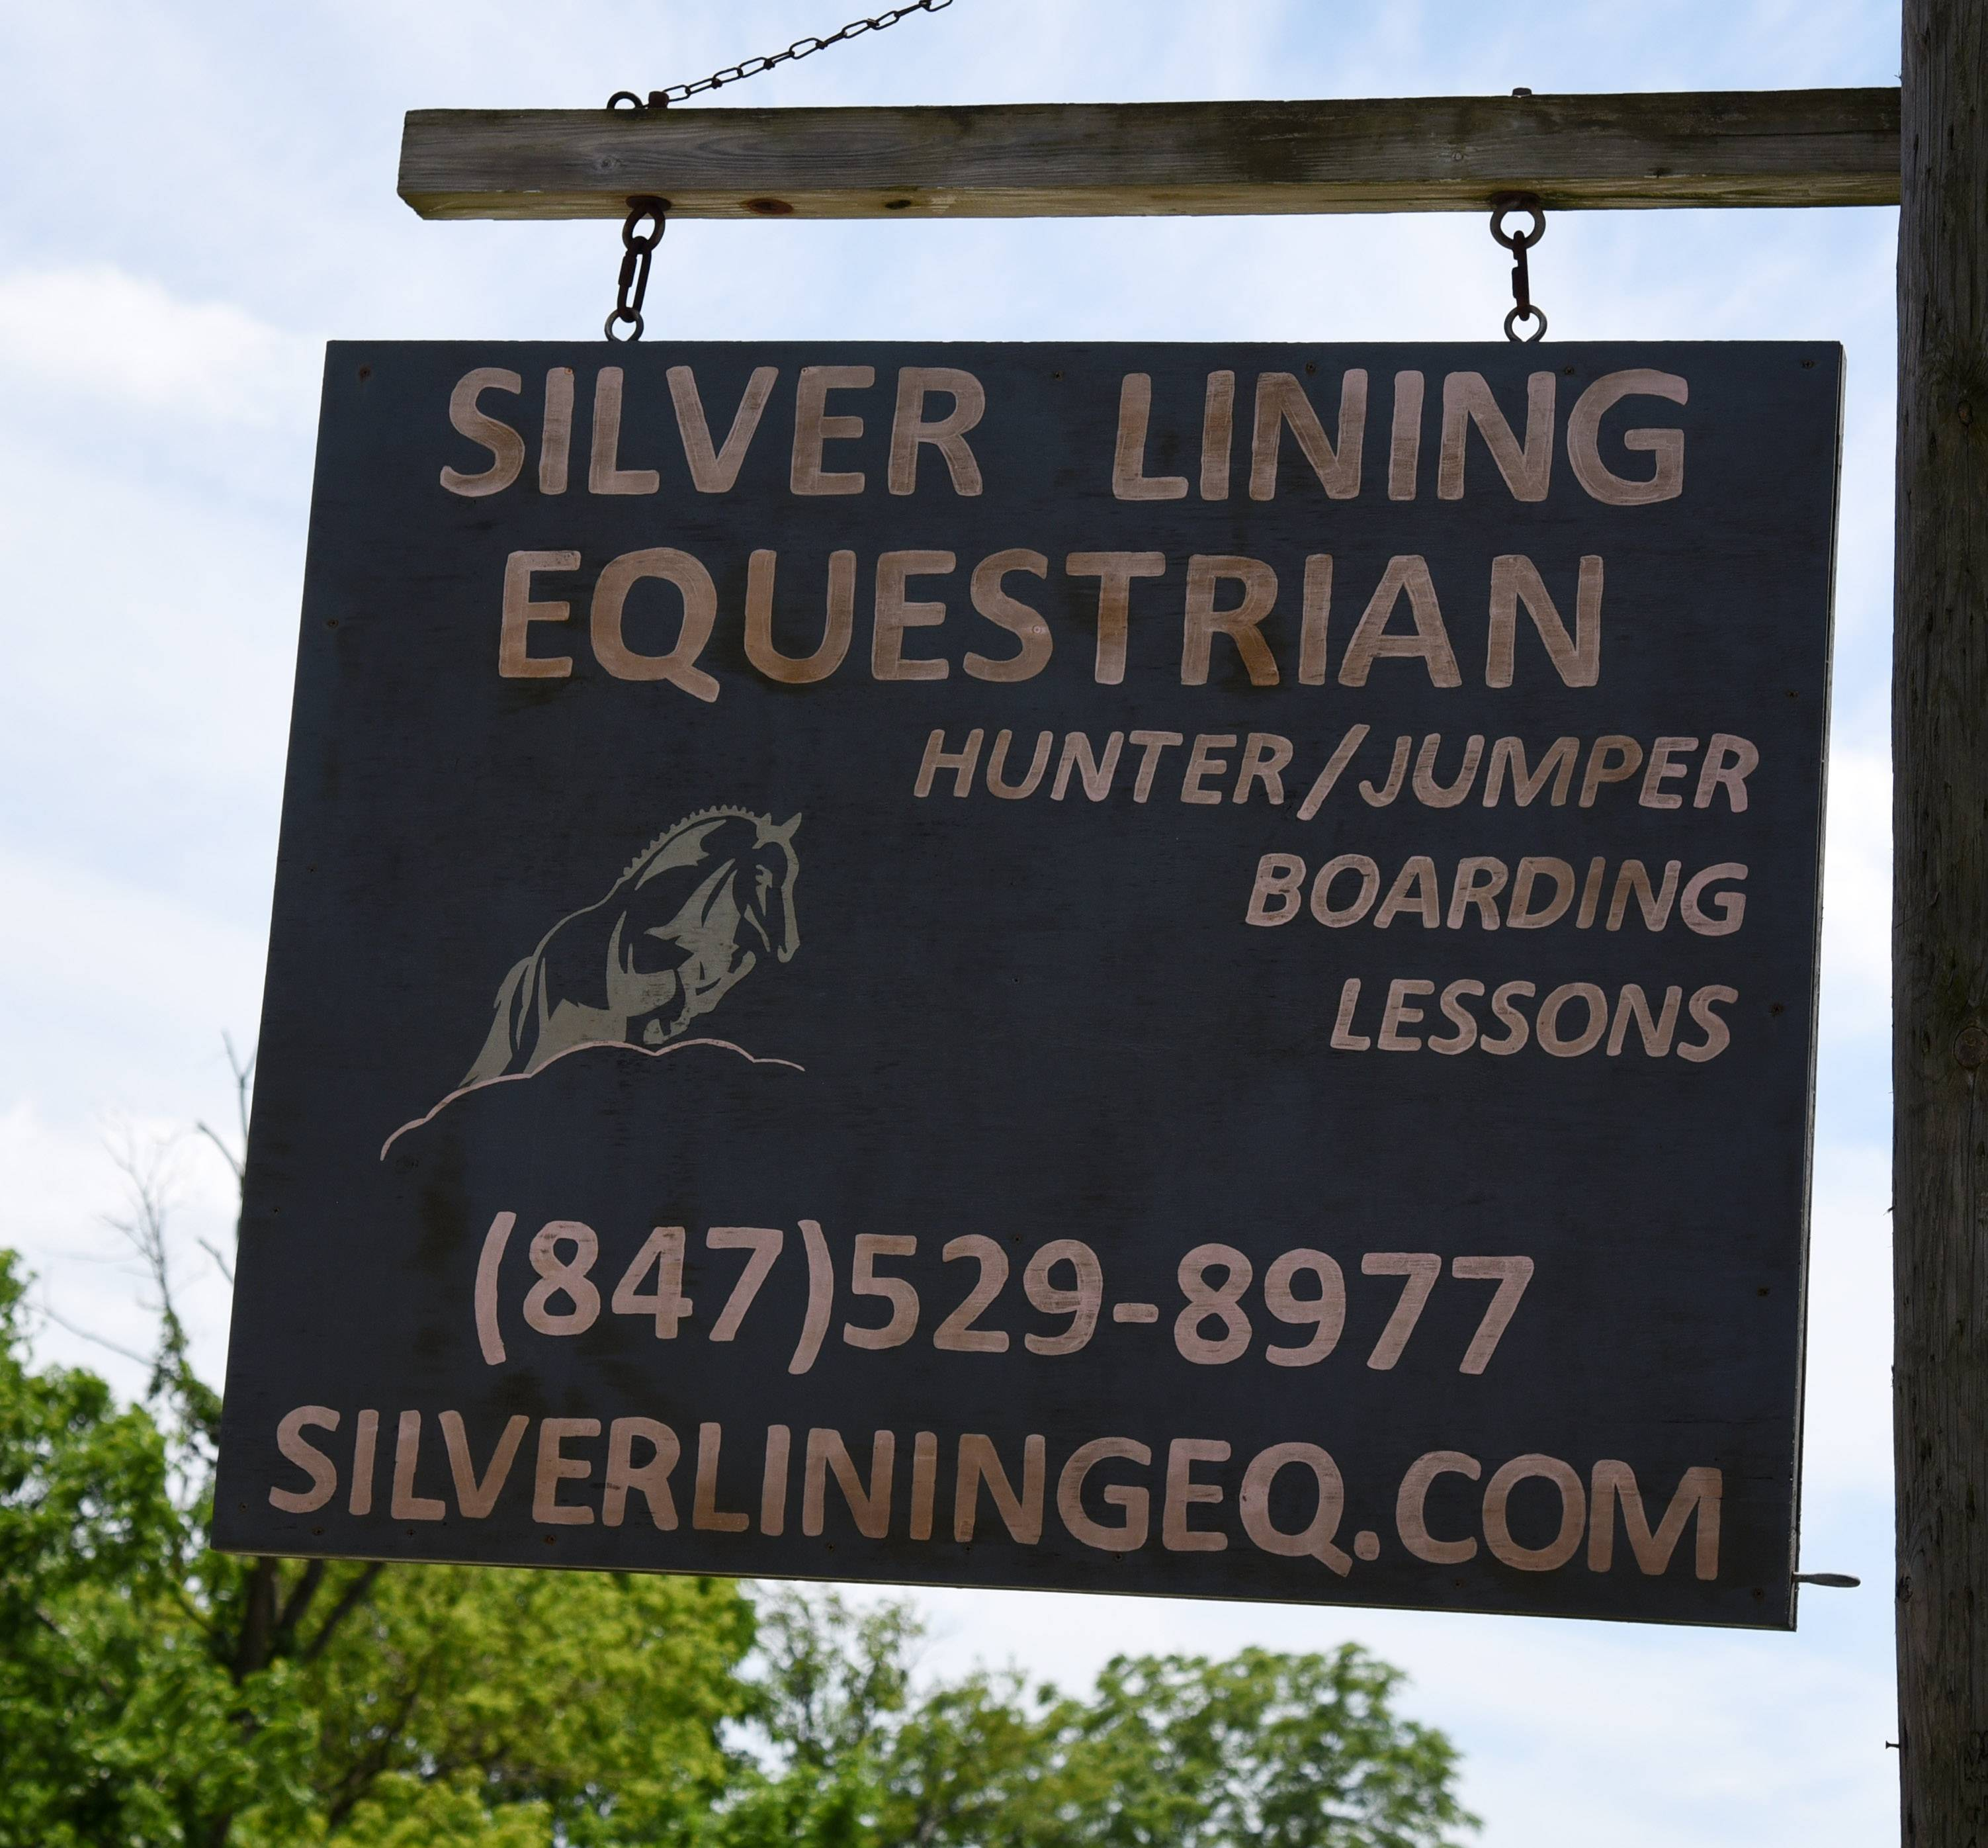 The Silver Lining Equestrian center in Lake in the Hills closed last week after the village evicted it.